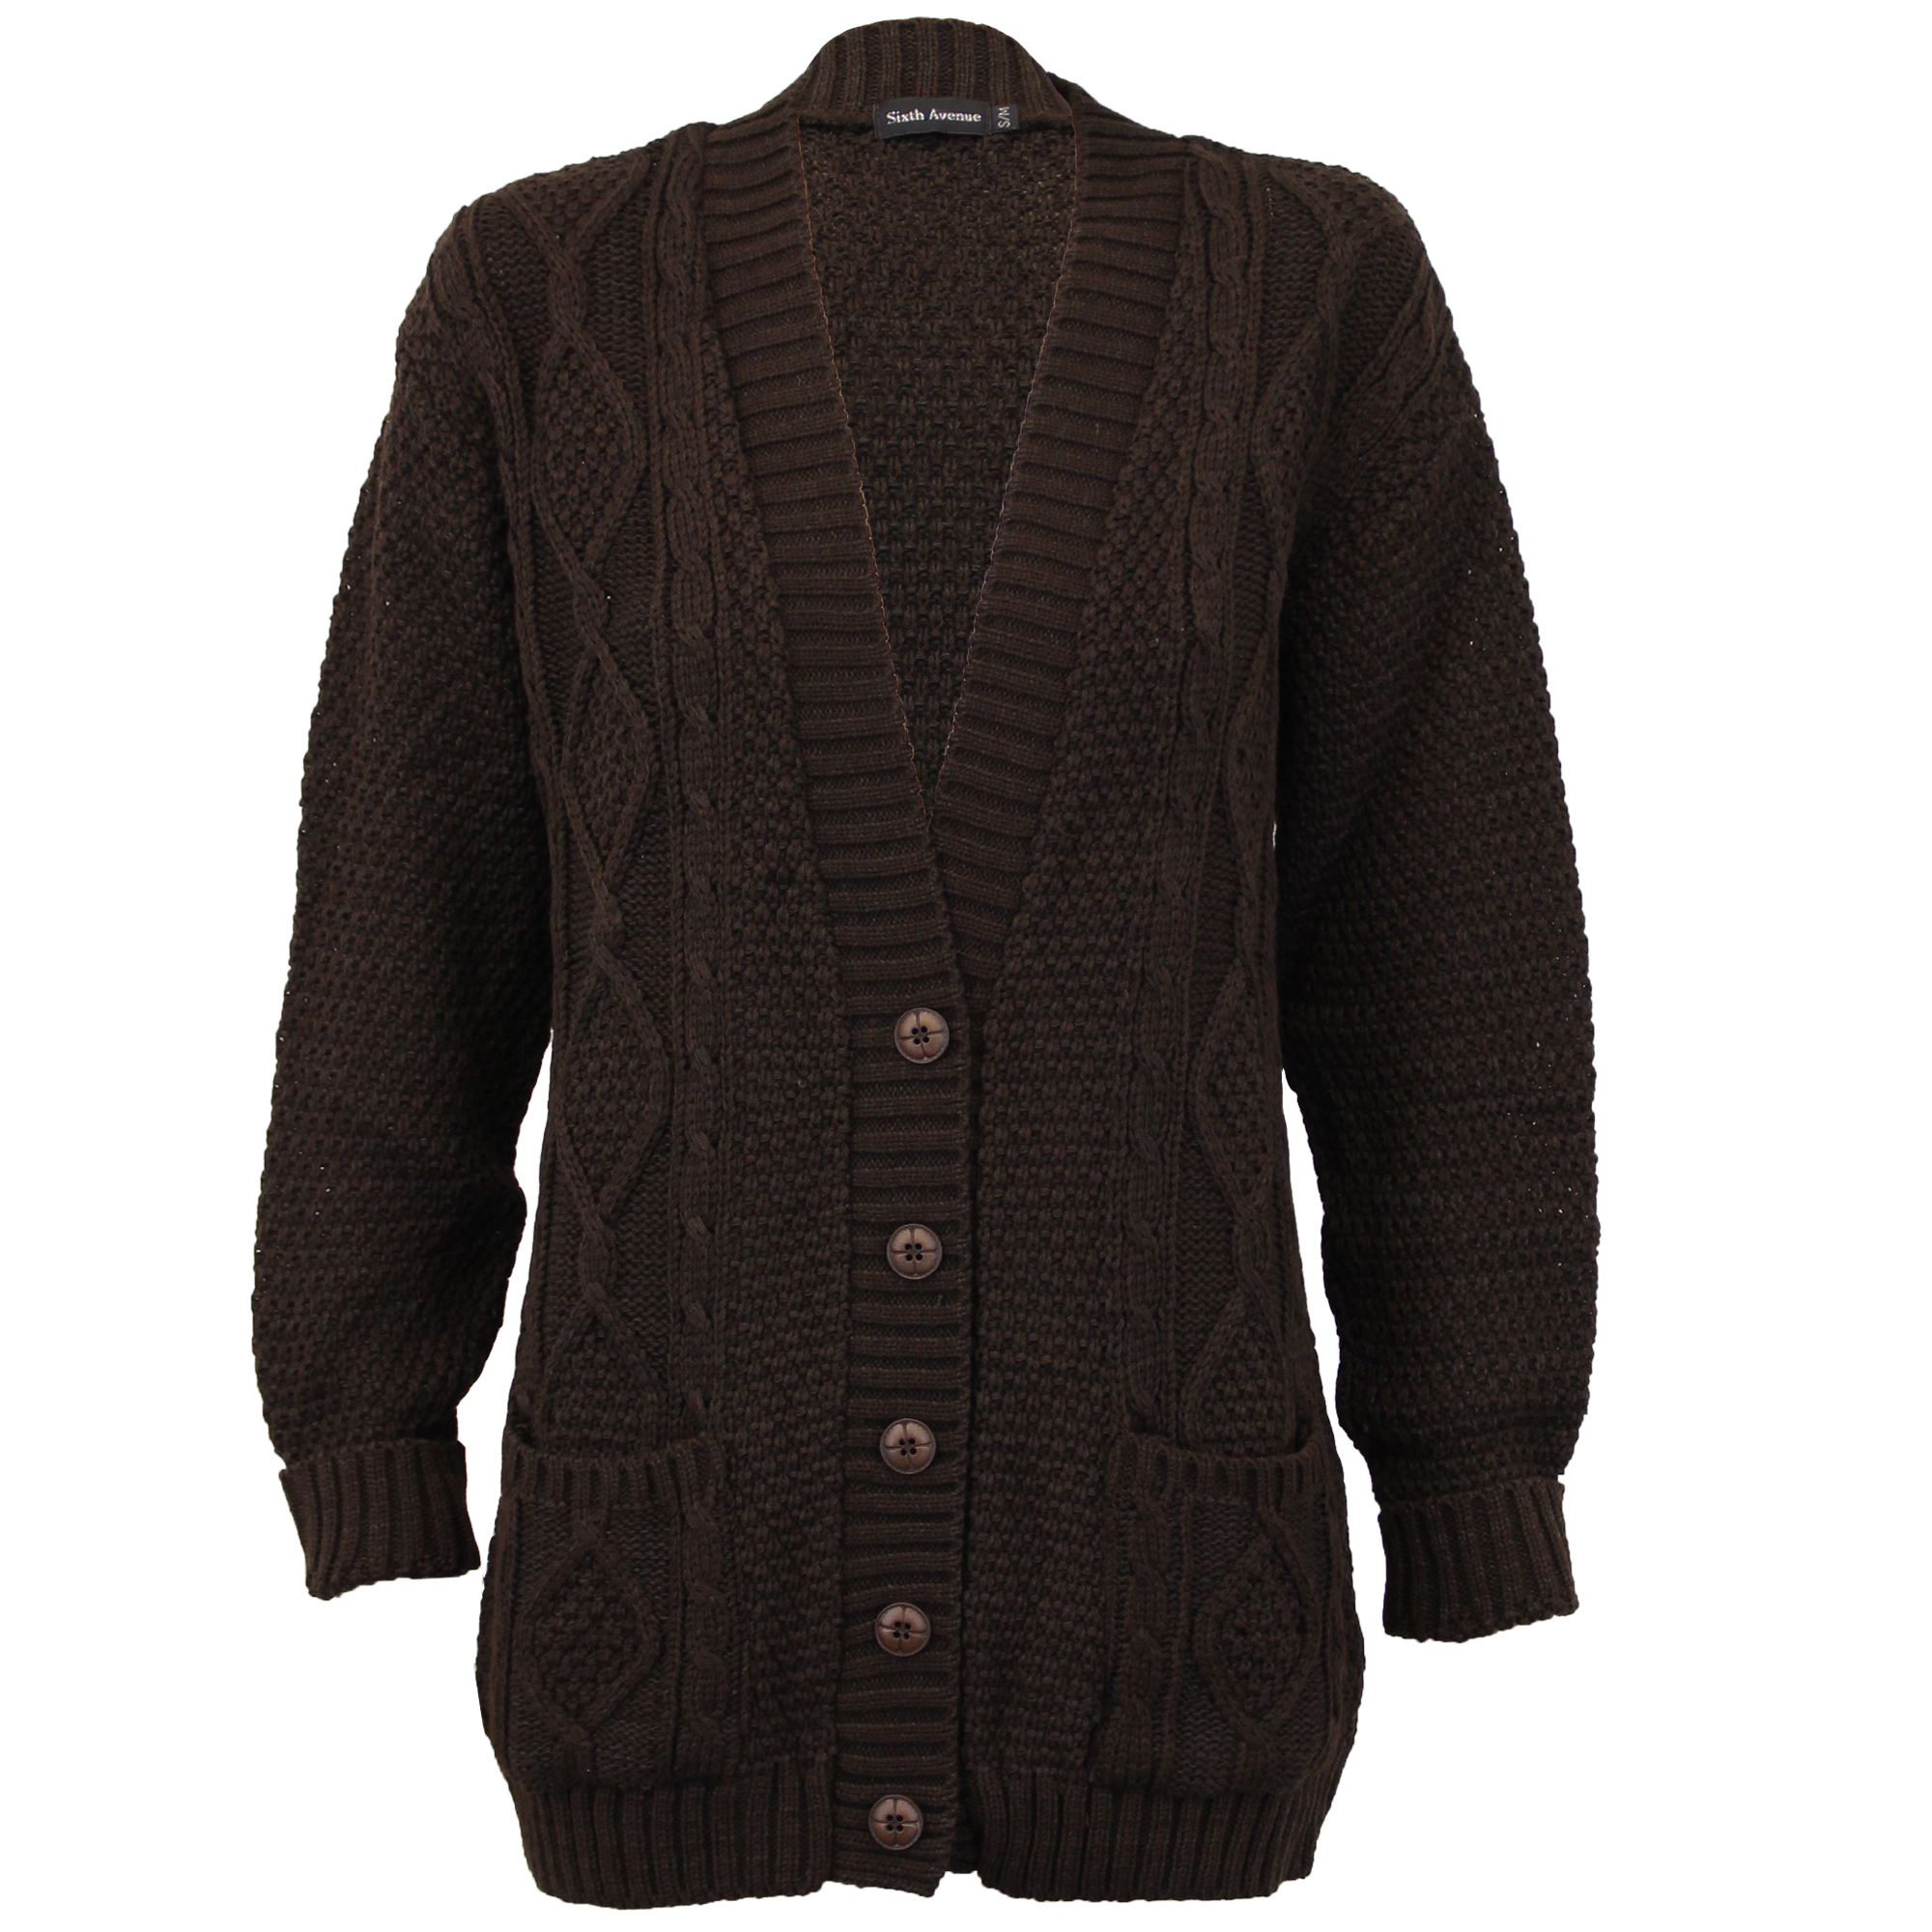 Ladies Cardigans Womens Knitted Jumper Cable Jacquard Boyfriend ...